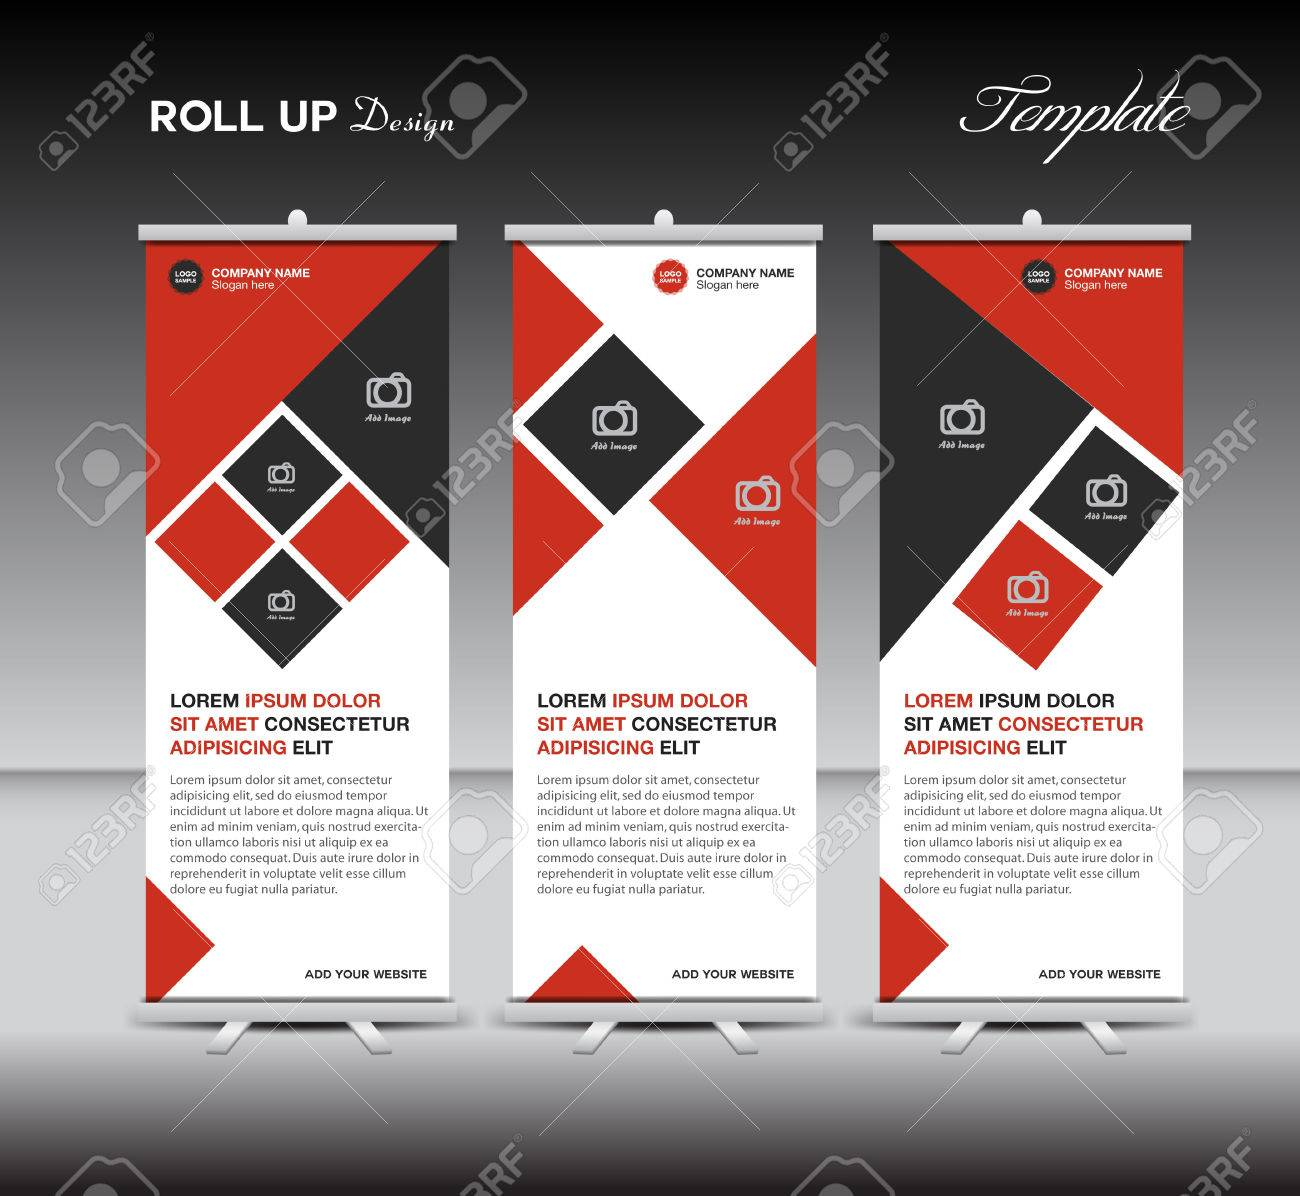 red roll up banner template display advertisement layout design red roll up banner template display advertisement layout design illustration stock vector 57839023